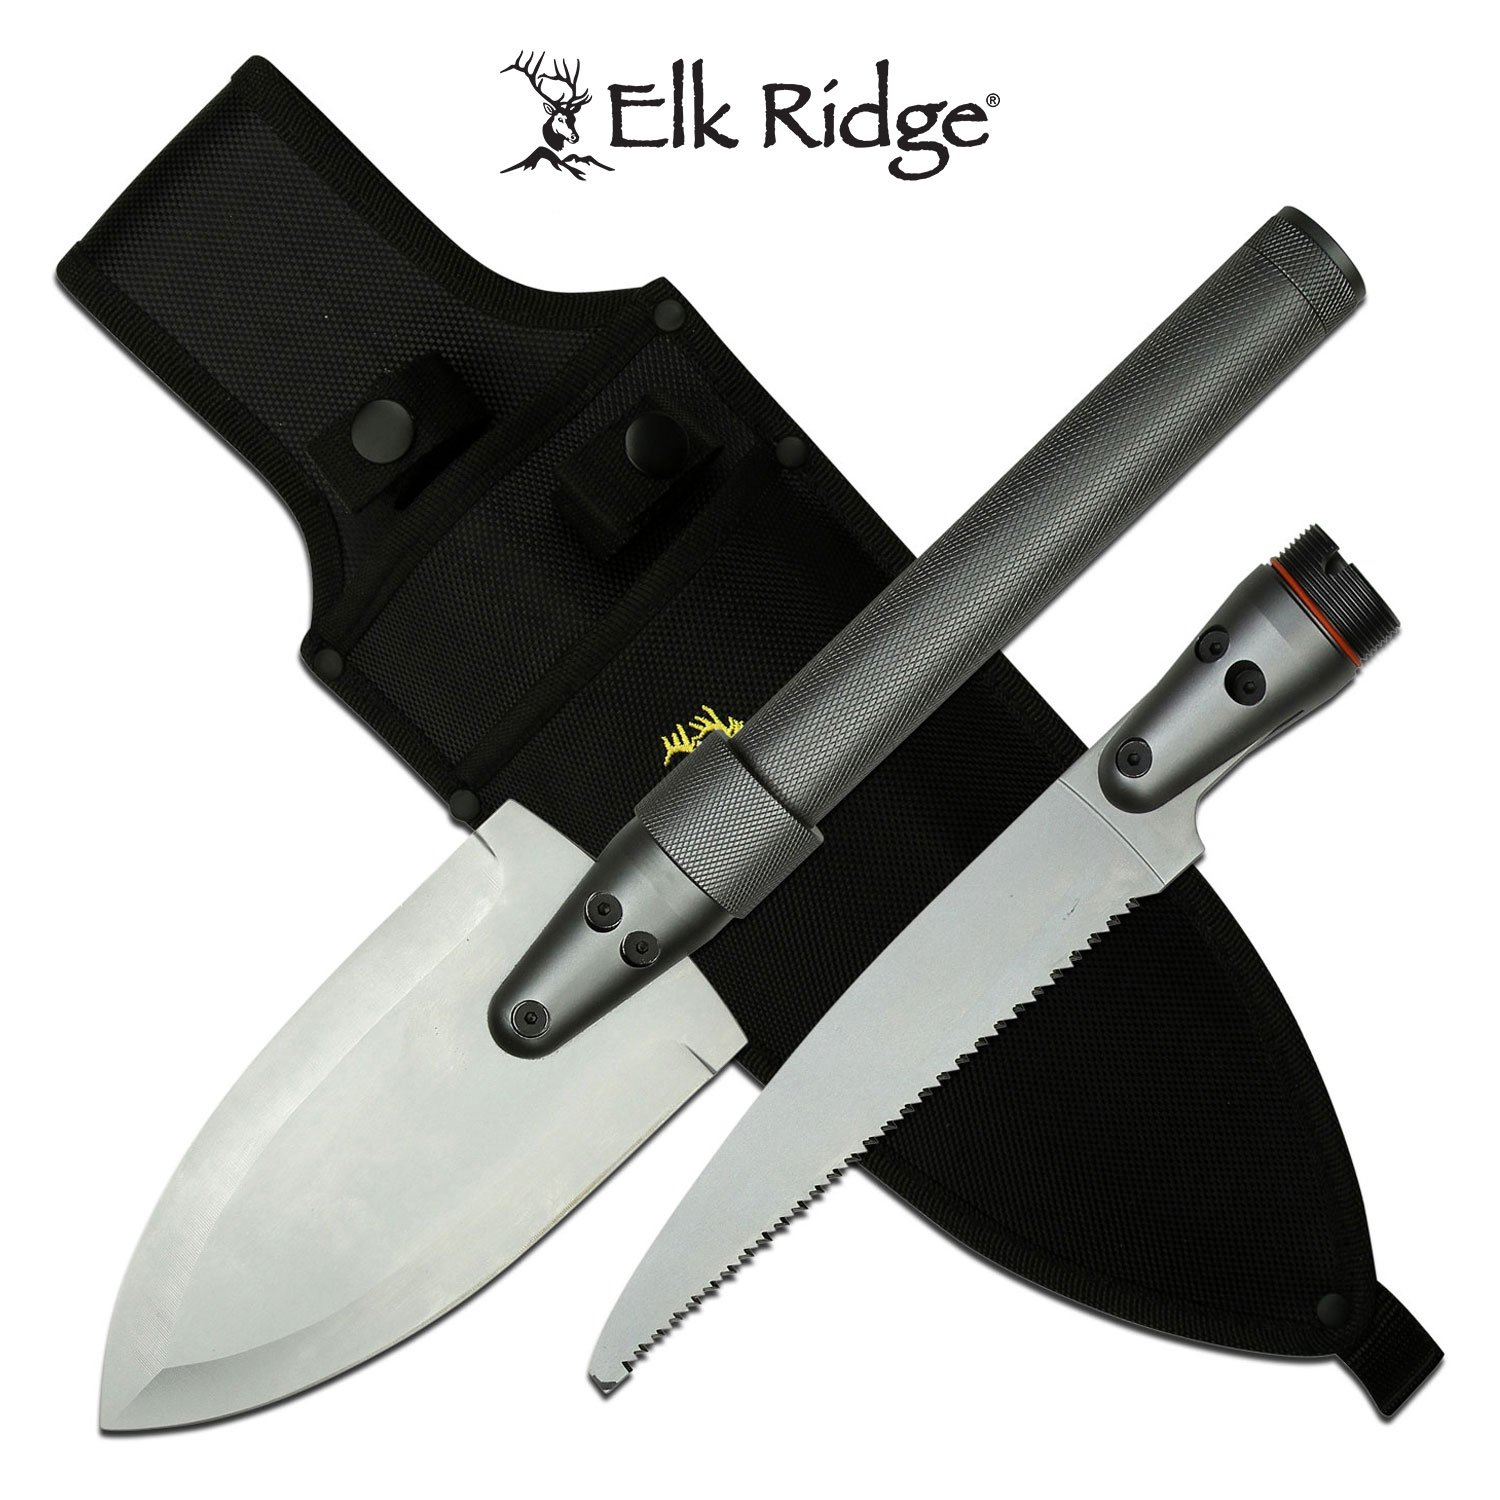 Survival Knife Kit Spear And SAW Blade Entrenching Tool With Nylon Sheath